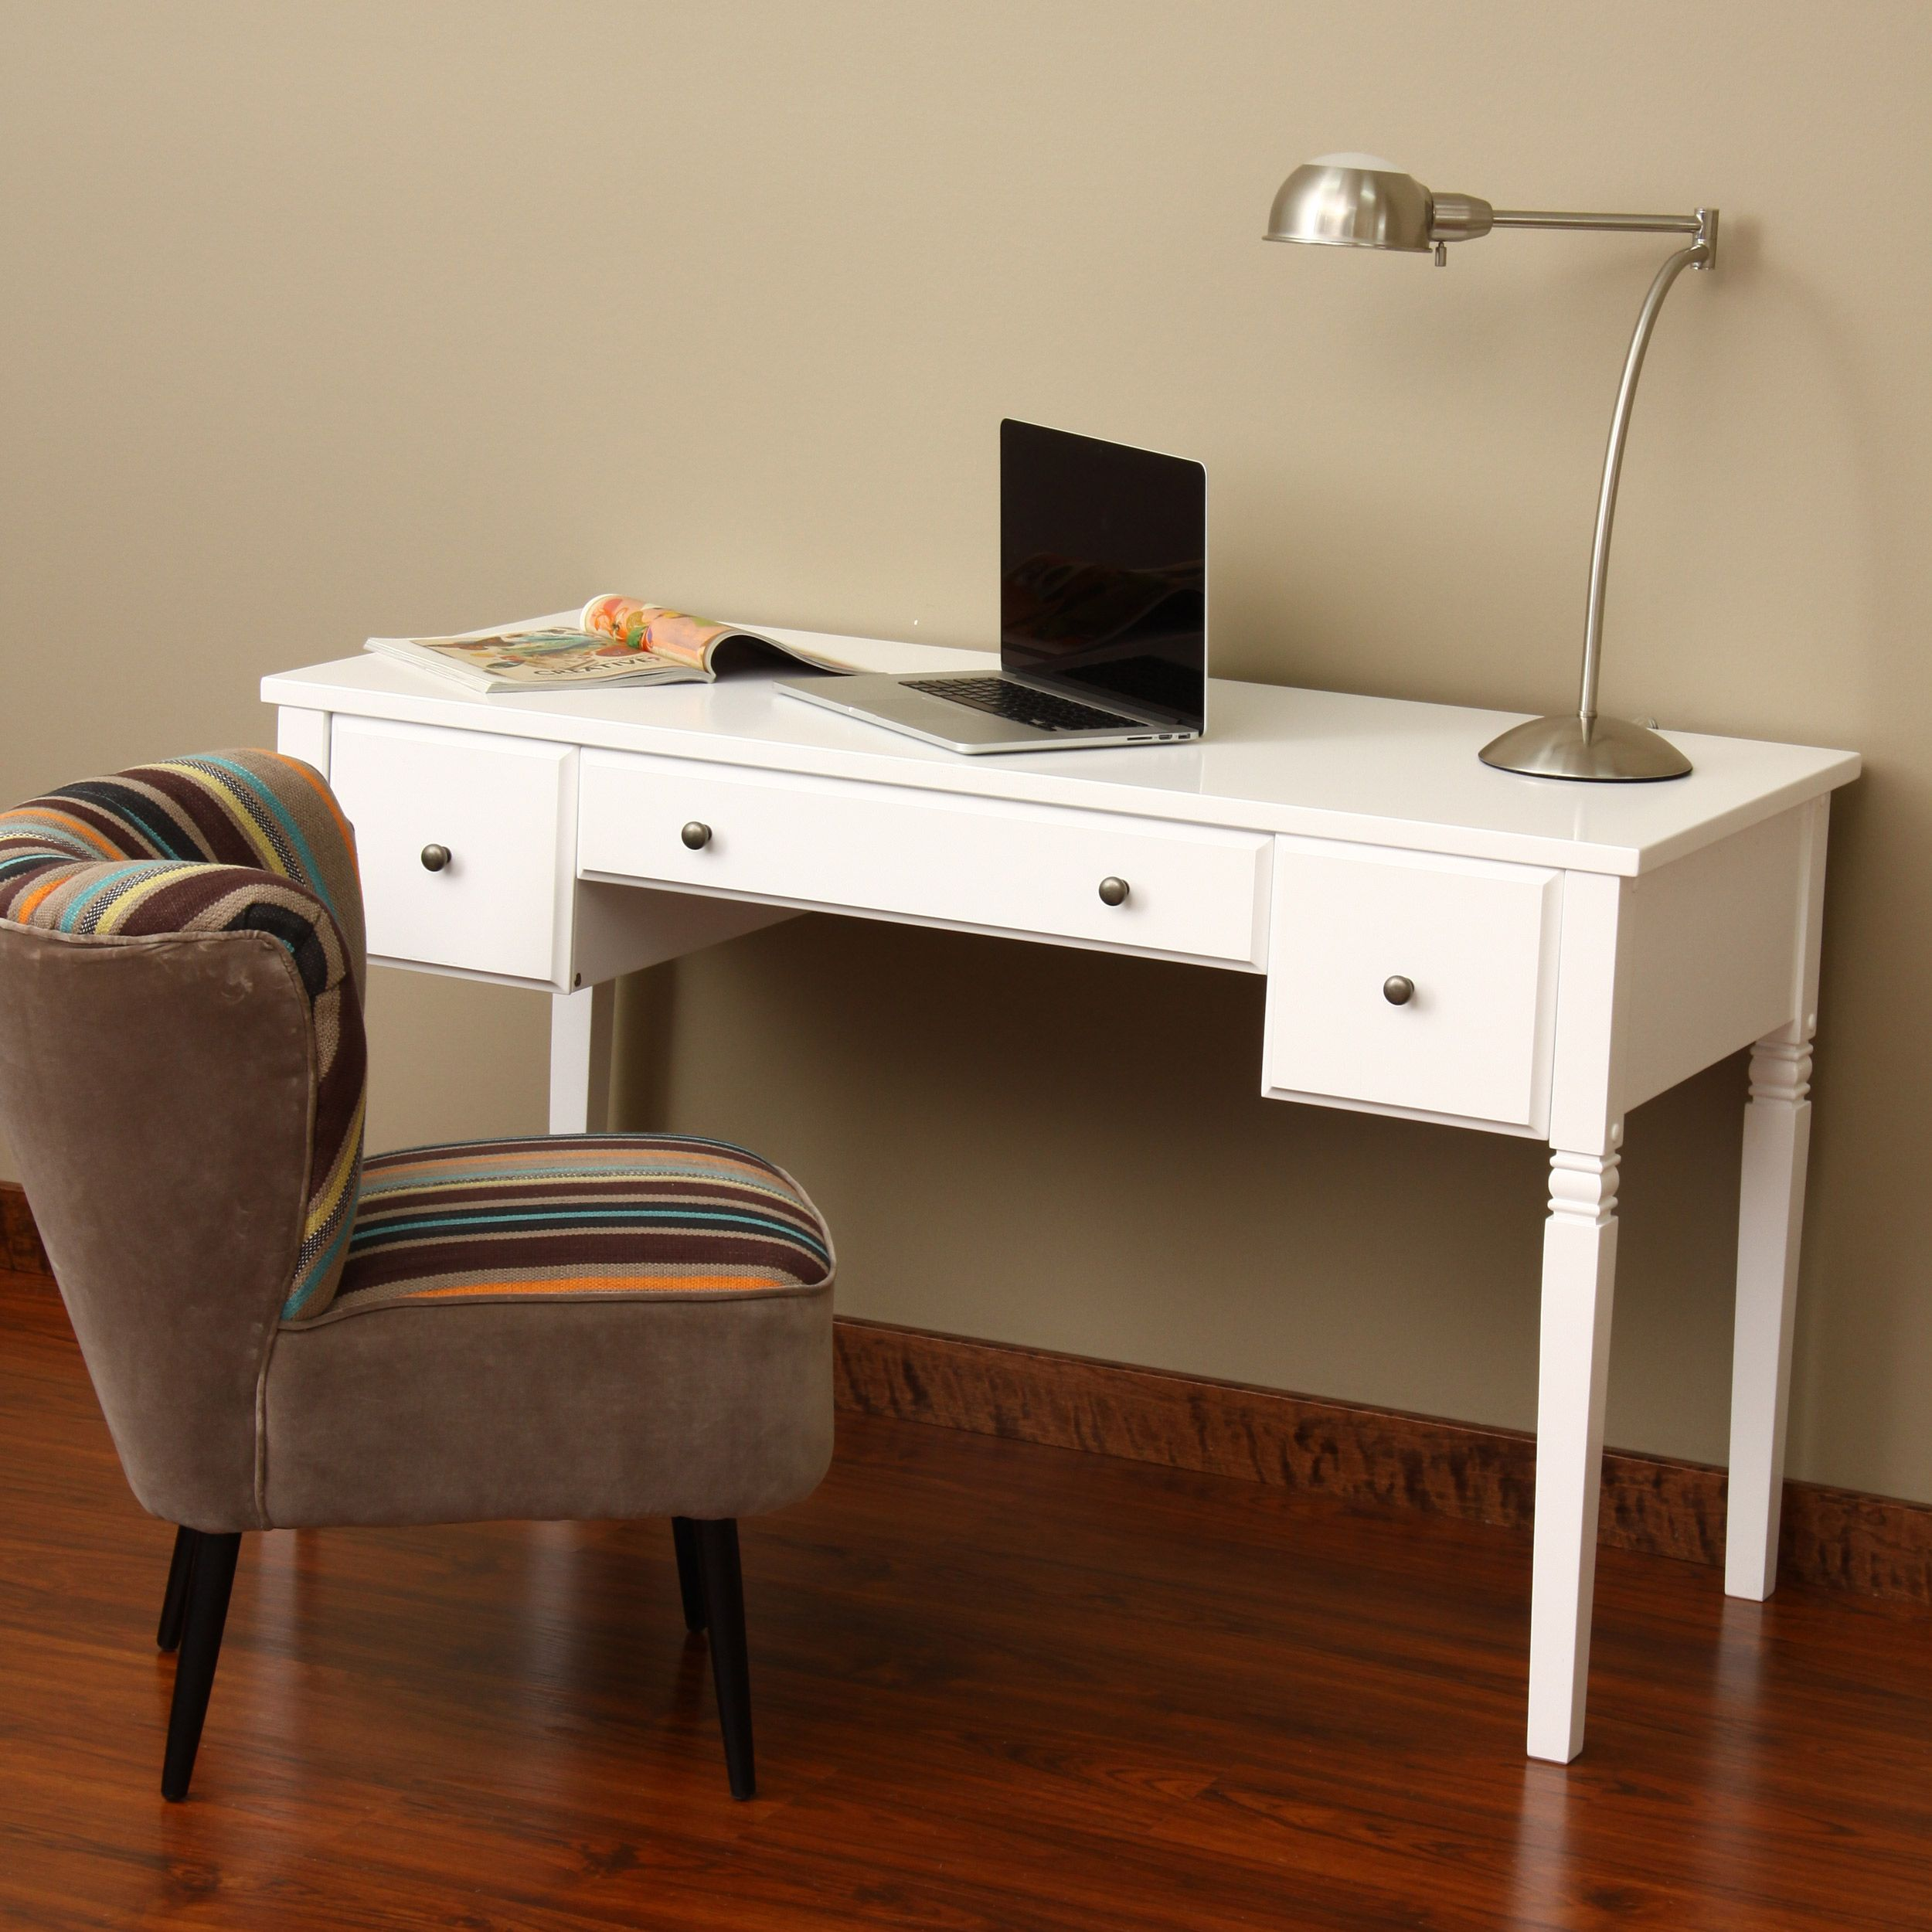 desk full desks spaces drawer black hutch size furniture corner shelves computer office for of with small gloss white workstation glass drawers l reception sale modern writing simple and best